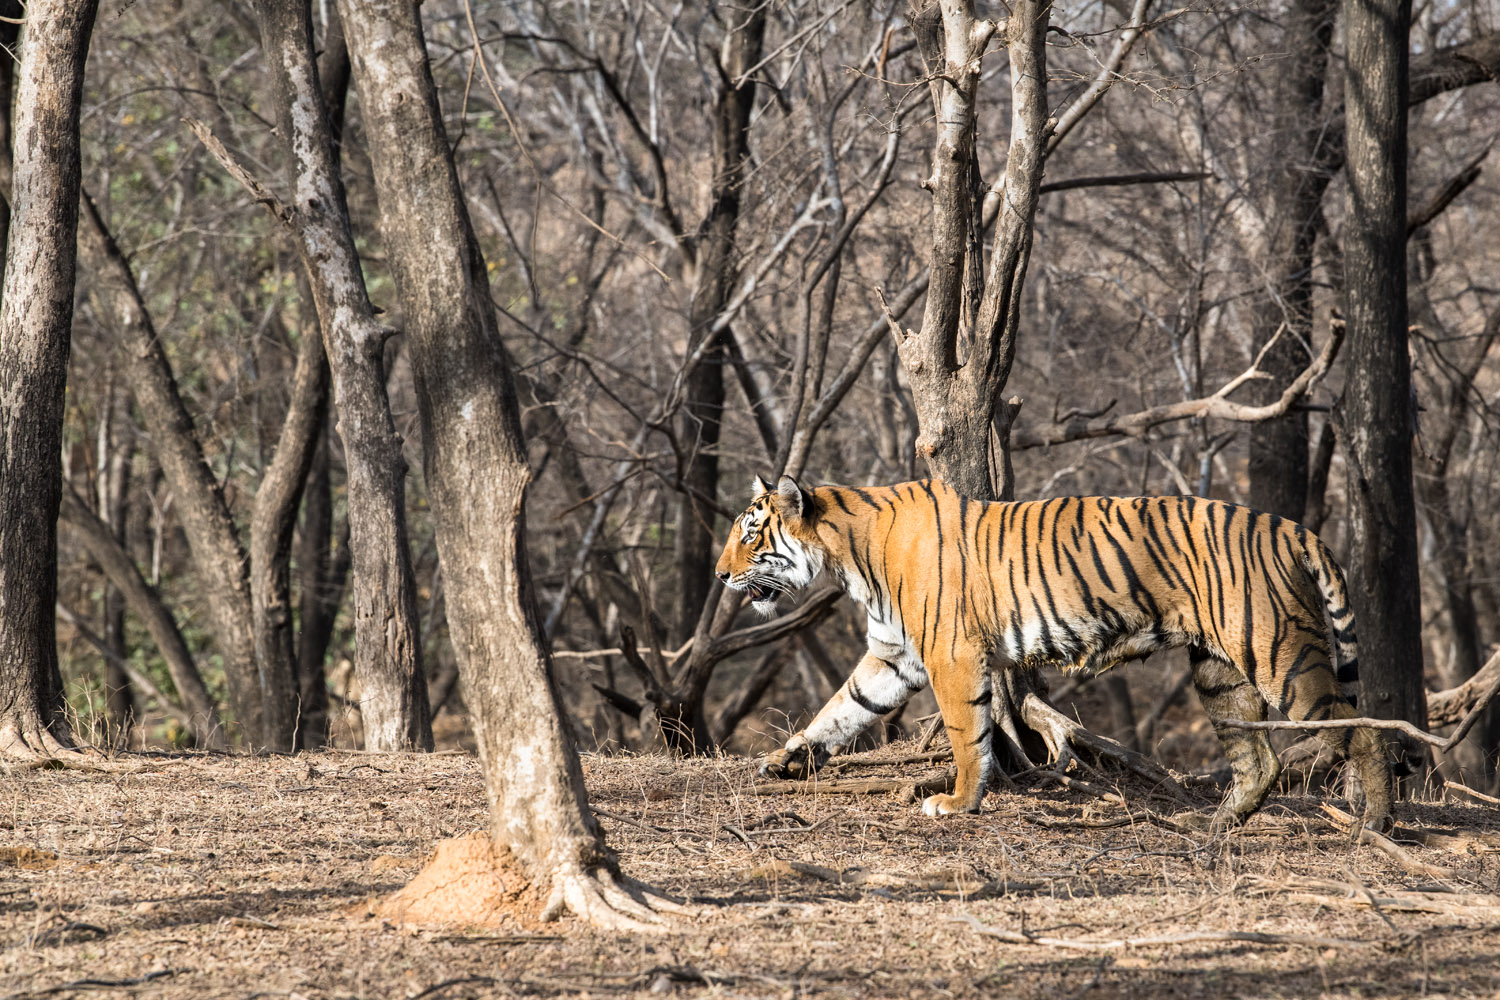 Bengal tigress walking through dhok tree forest, Ranthambhore National Park, Rajasthan, India